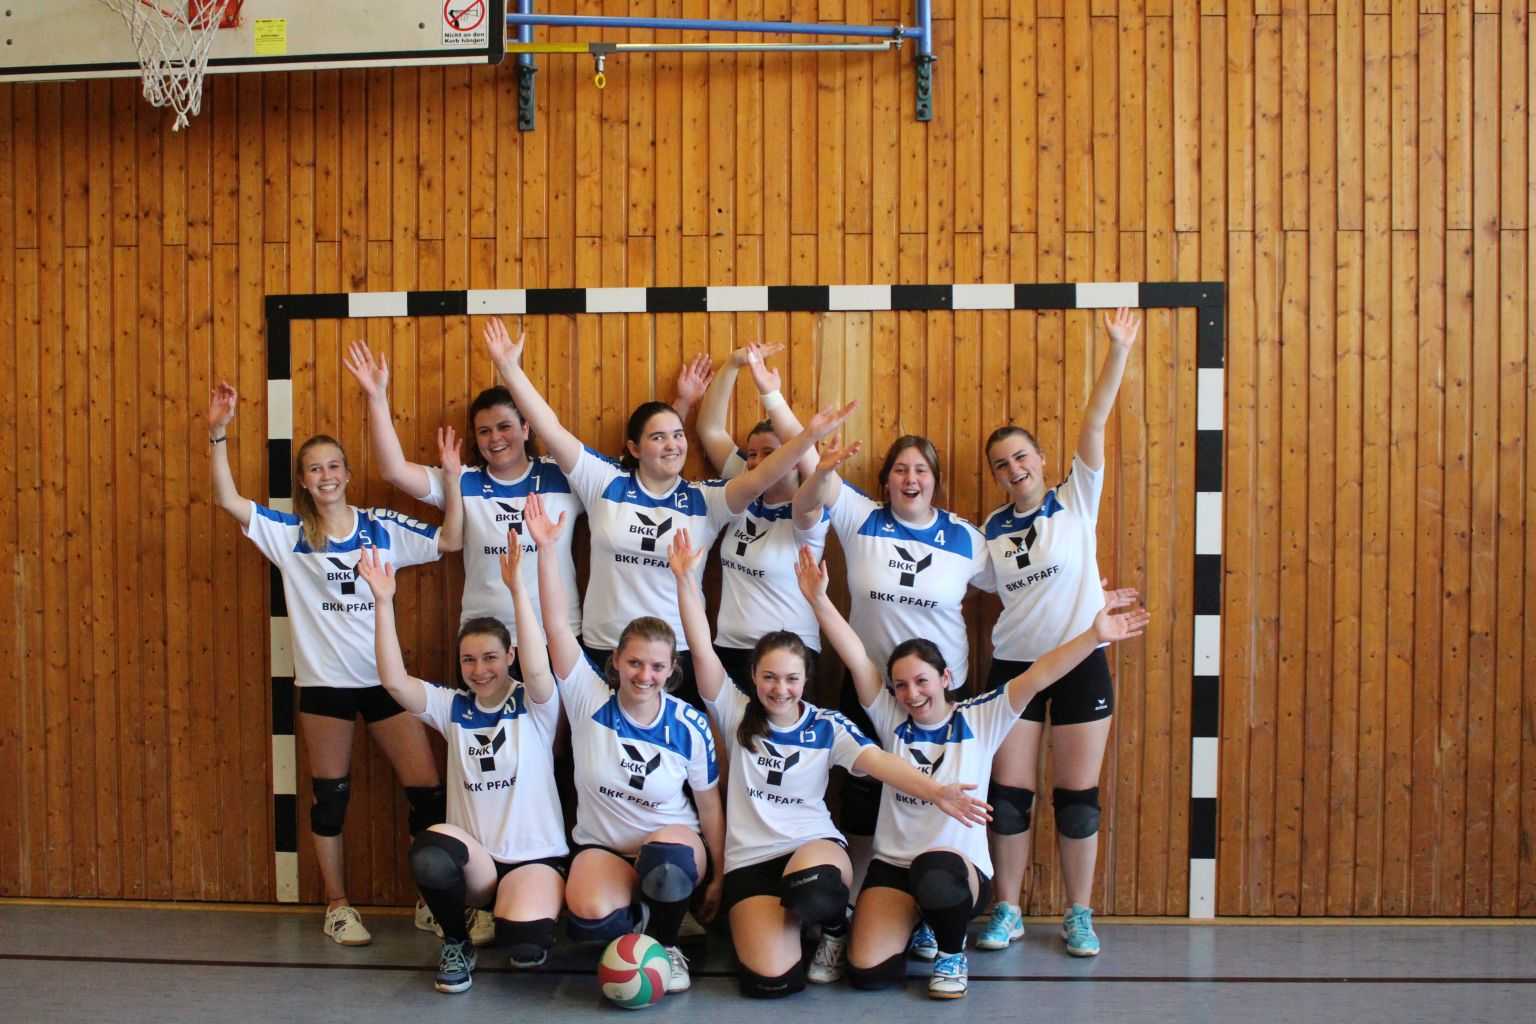 170325_Volleyball_IMG_4243